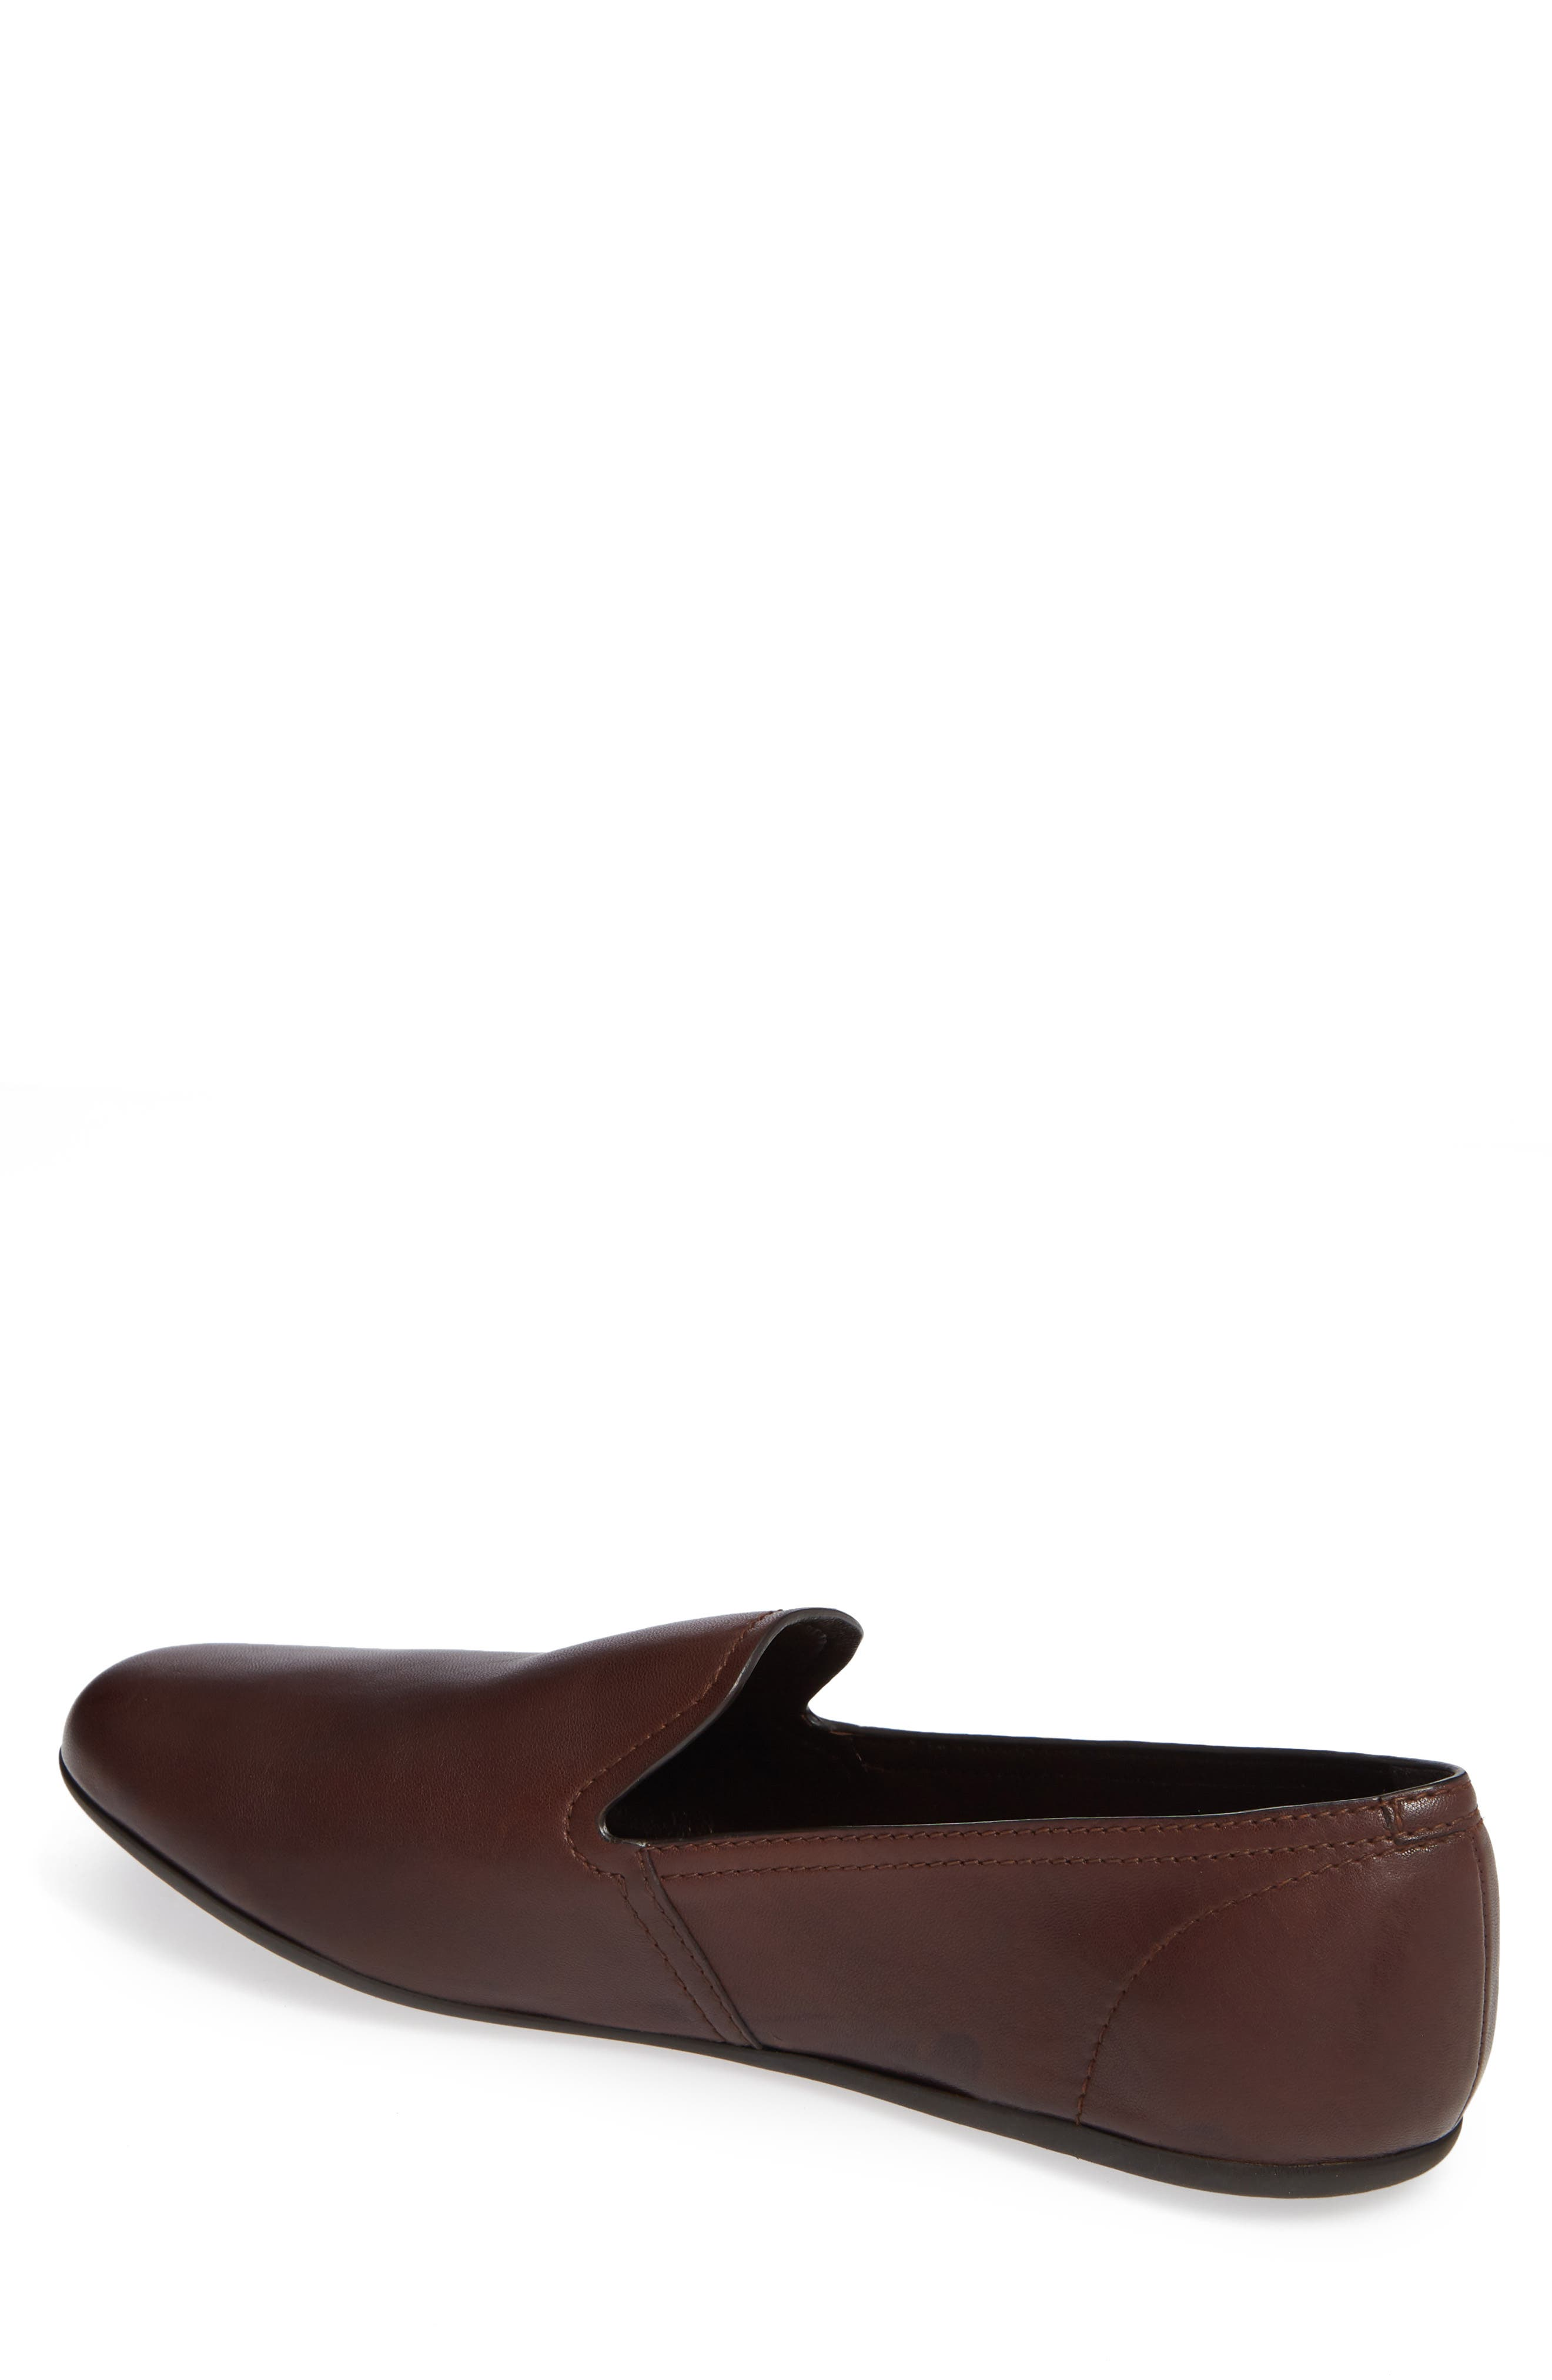 070303c38cd ... official prada mens loafers driving shoes nordstrom b5812 143c3